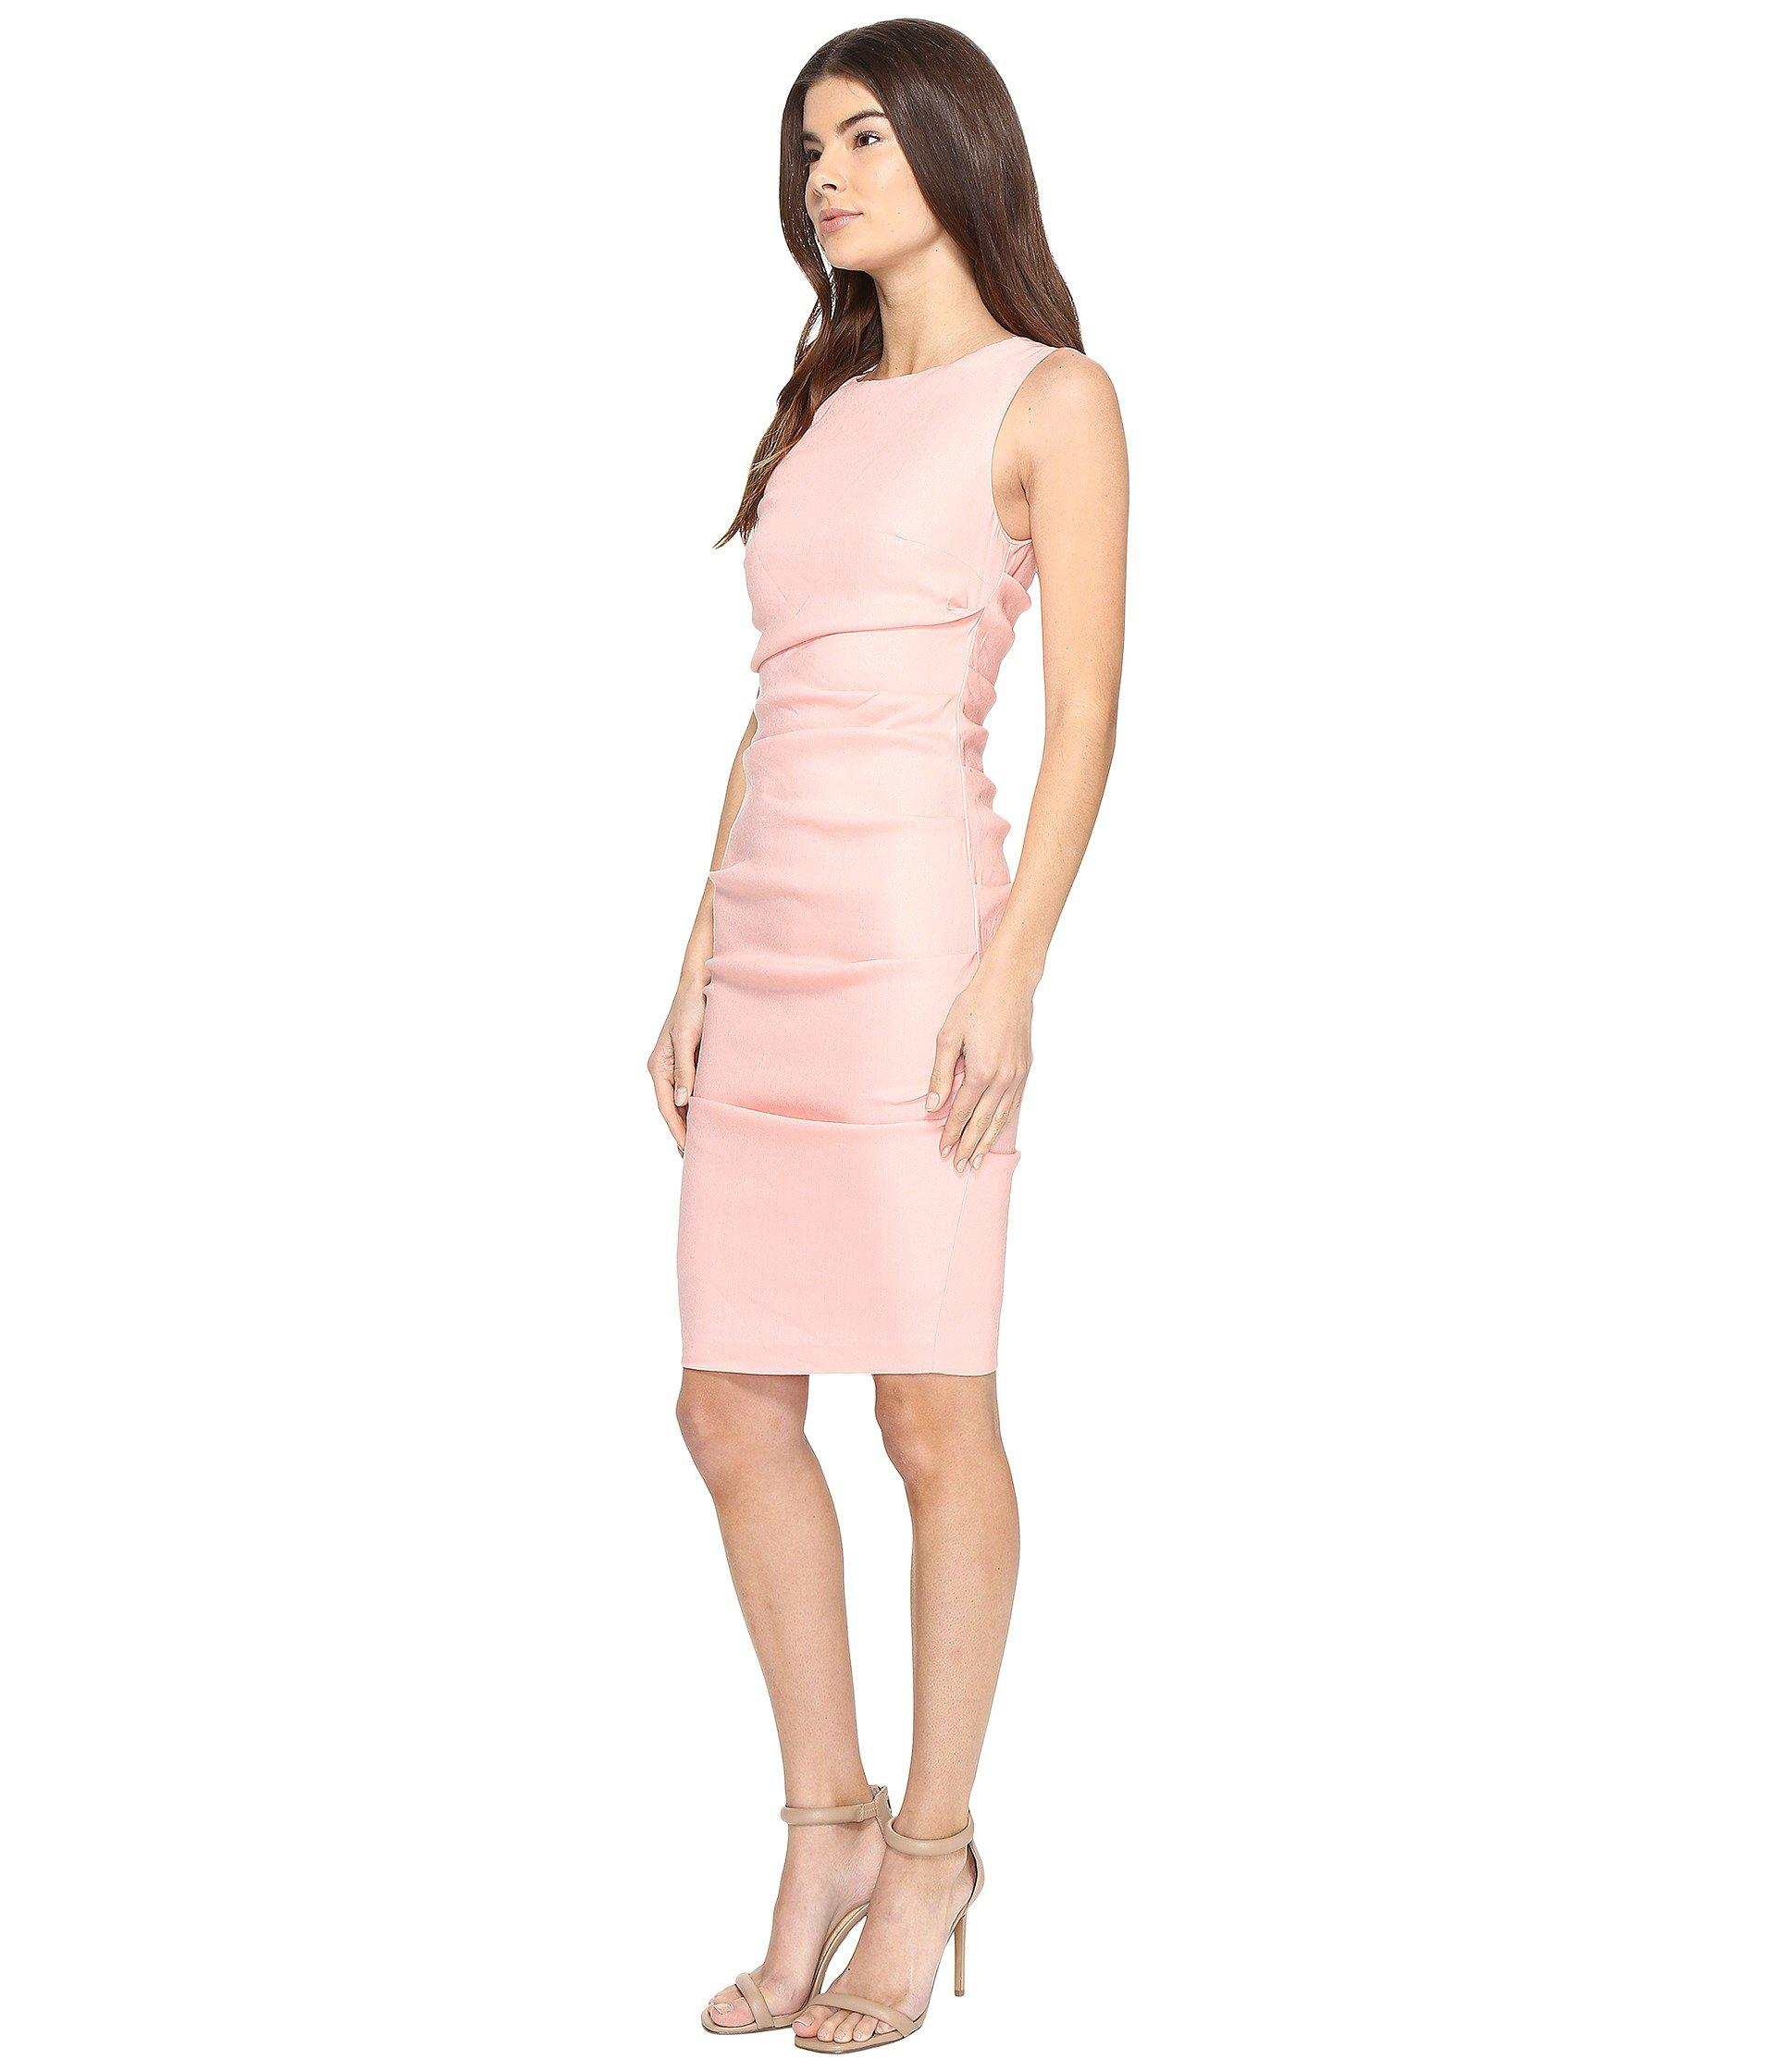 b9784cf987 Lyst - Nicole Miller Lauren Stretch Linen Dress in Pink